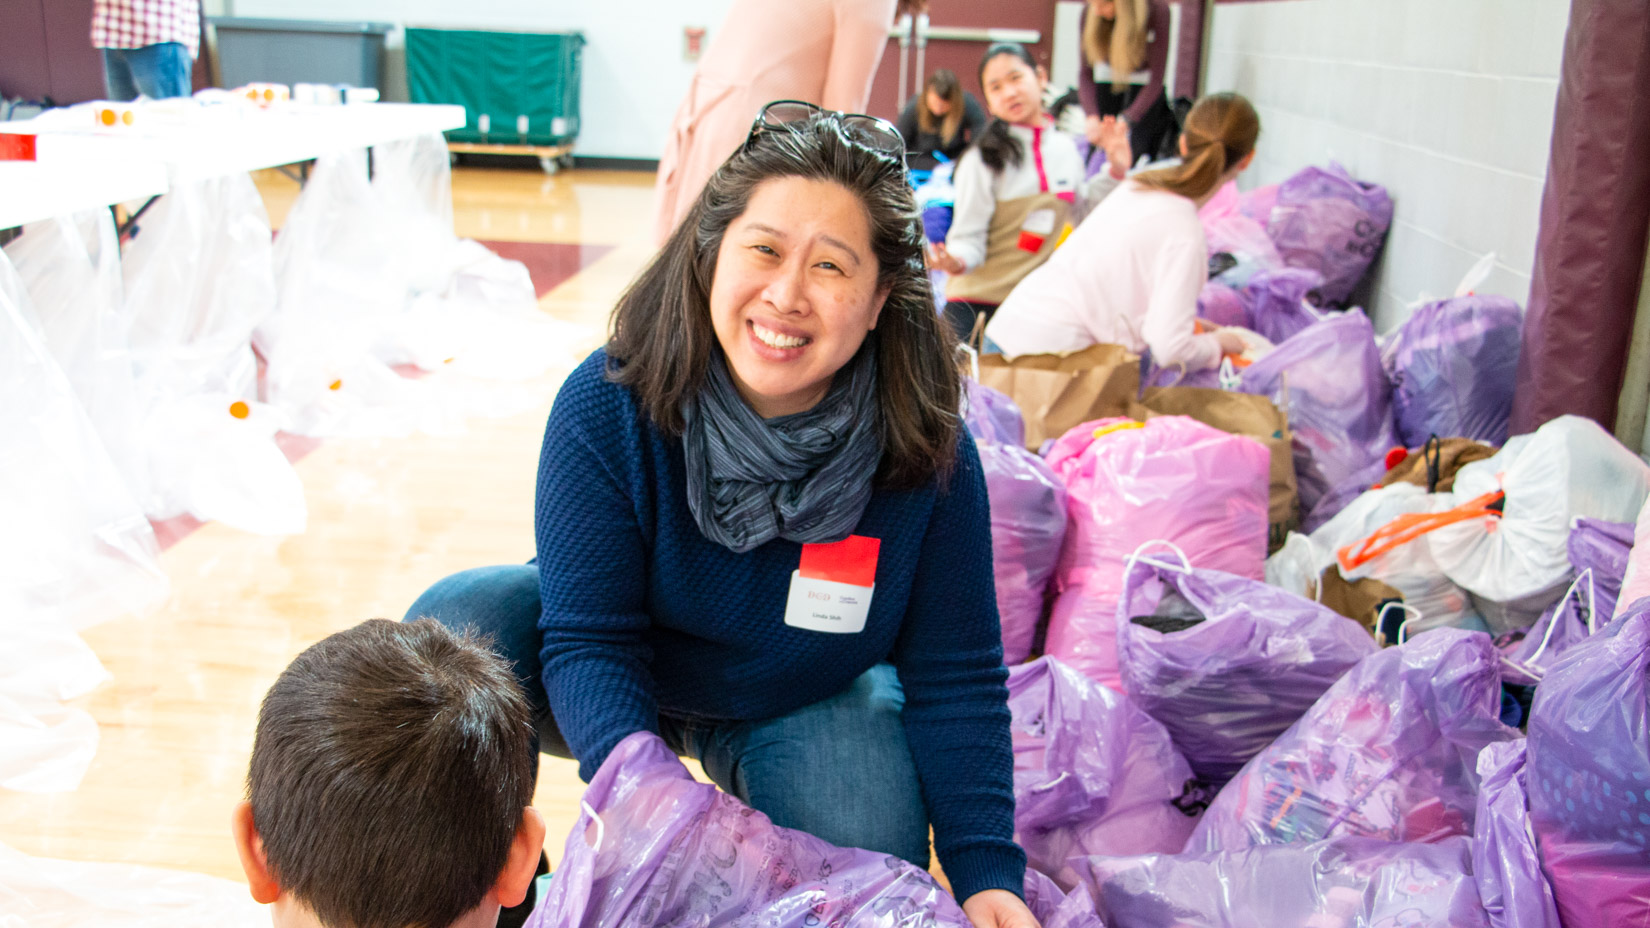 A parent working with donated items at an event.